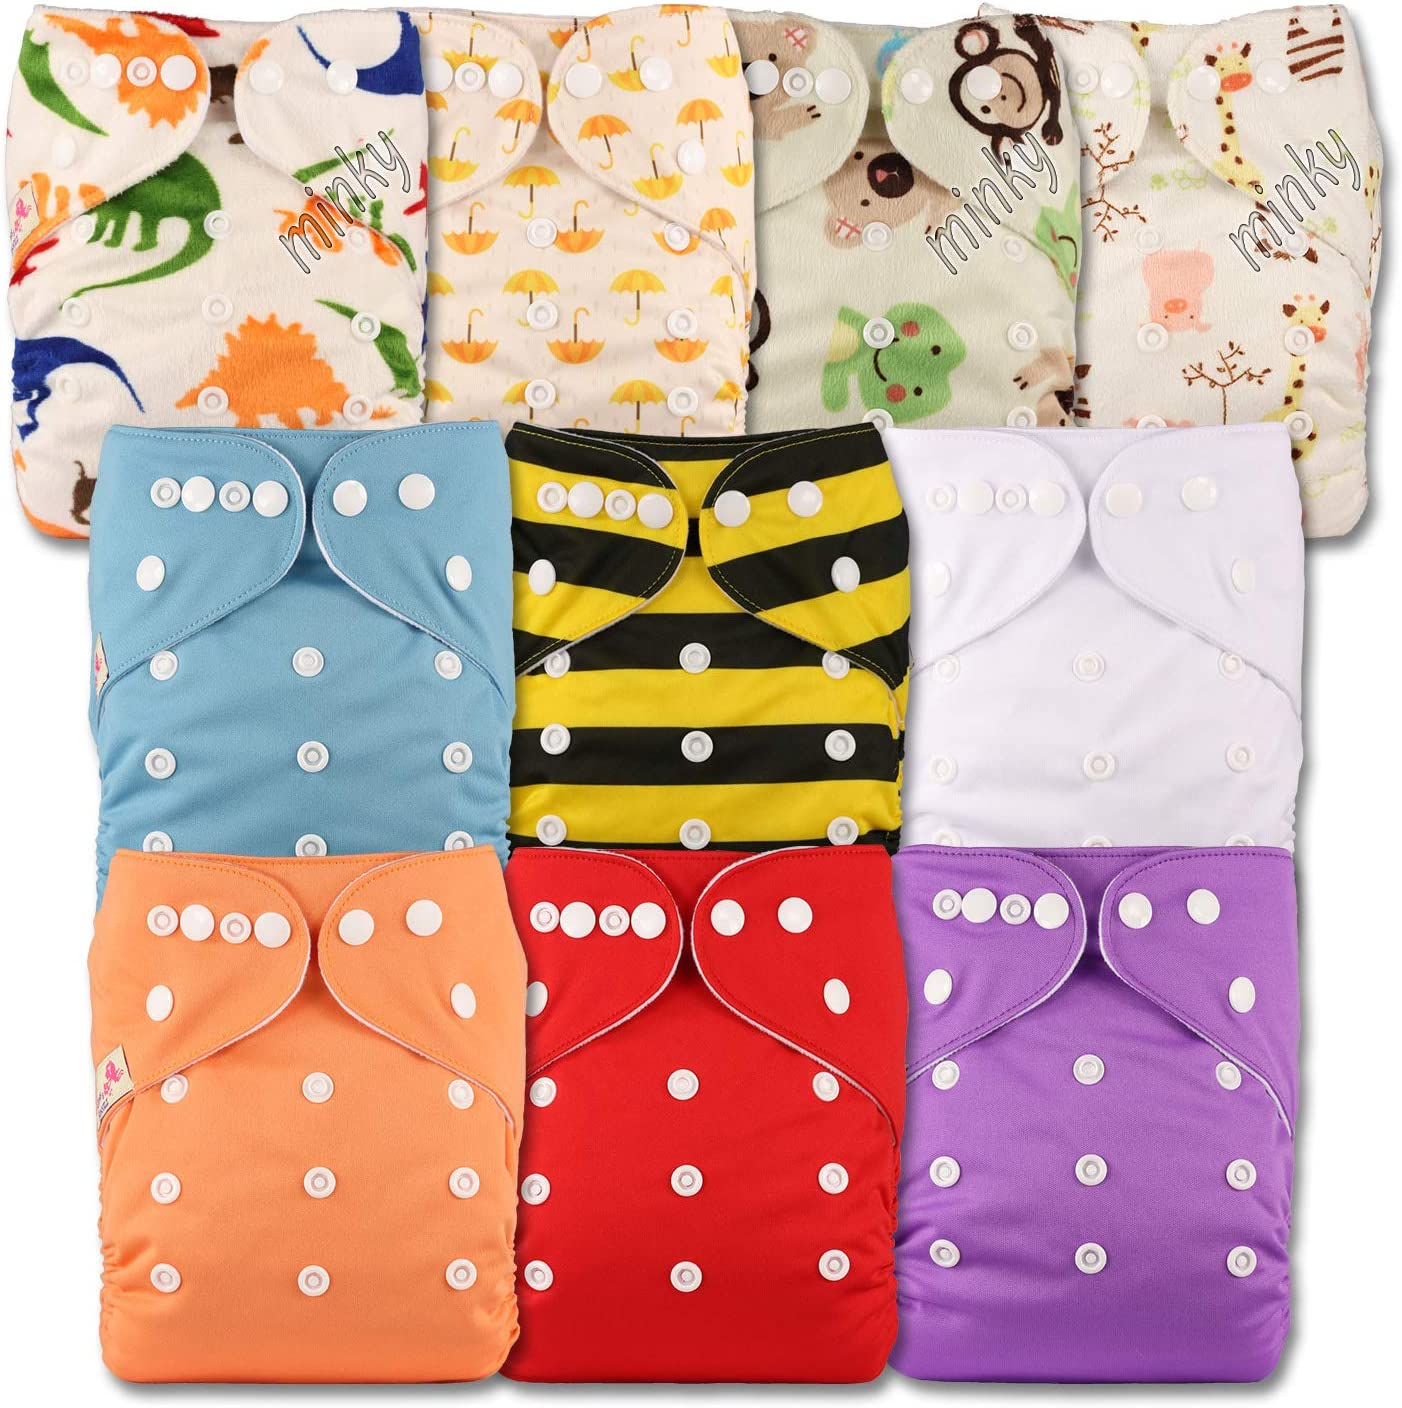 Reusable Pocket Cloth Nappy Littles /& Bloomz Set of 10 Without Insert Patterns 1009 Fastener: Popper